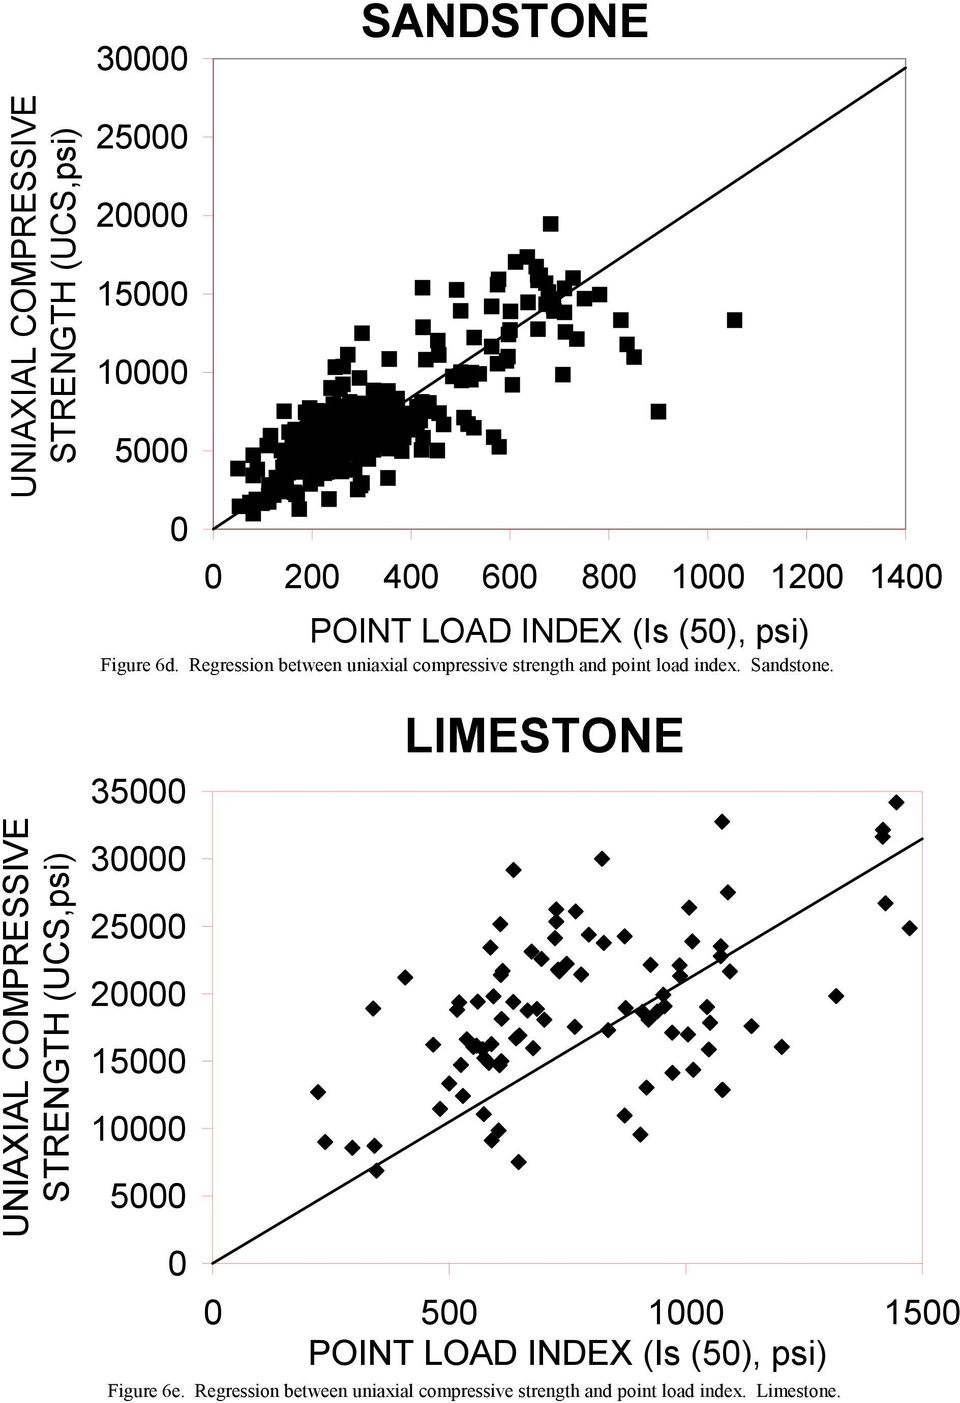 Regression between uniaxial compressive strength and point load index. Sandstone.